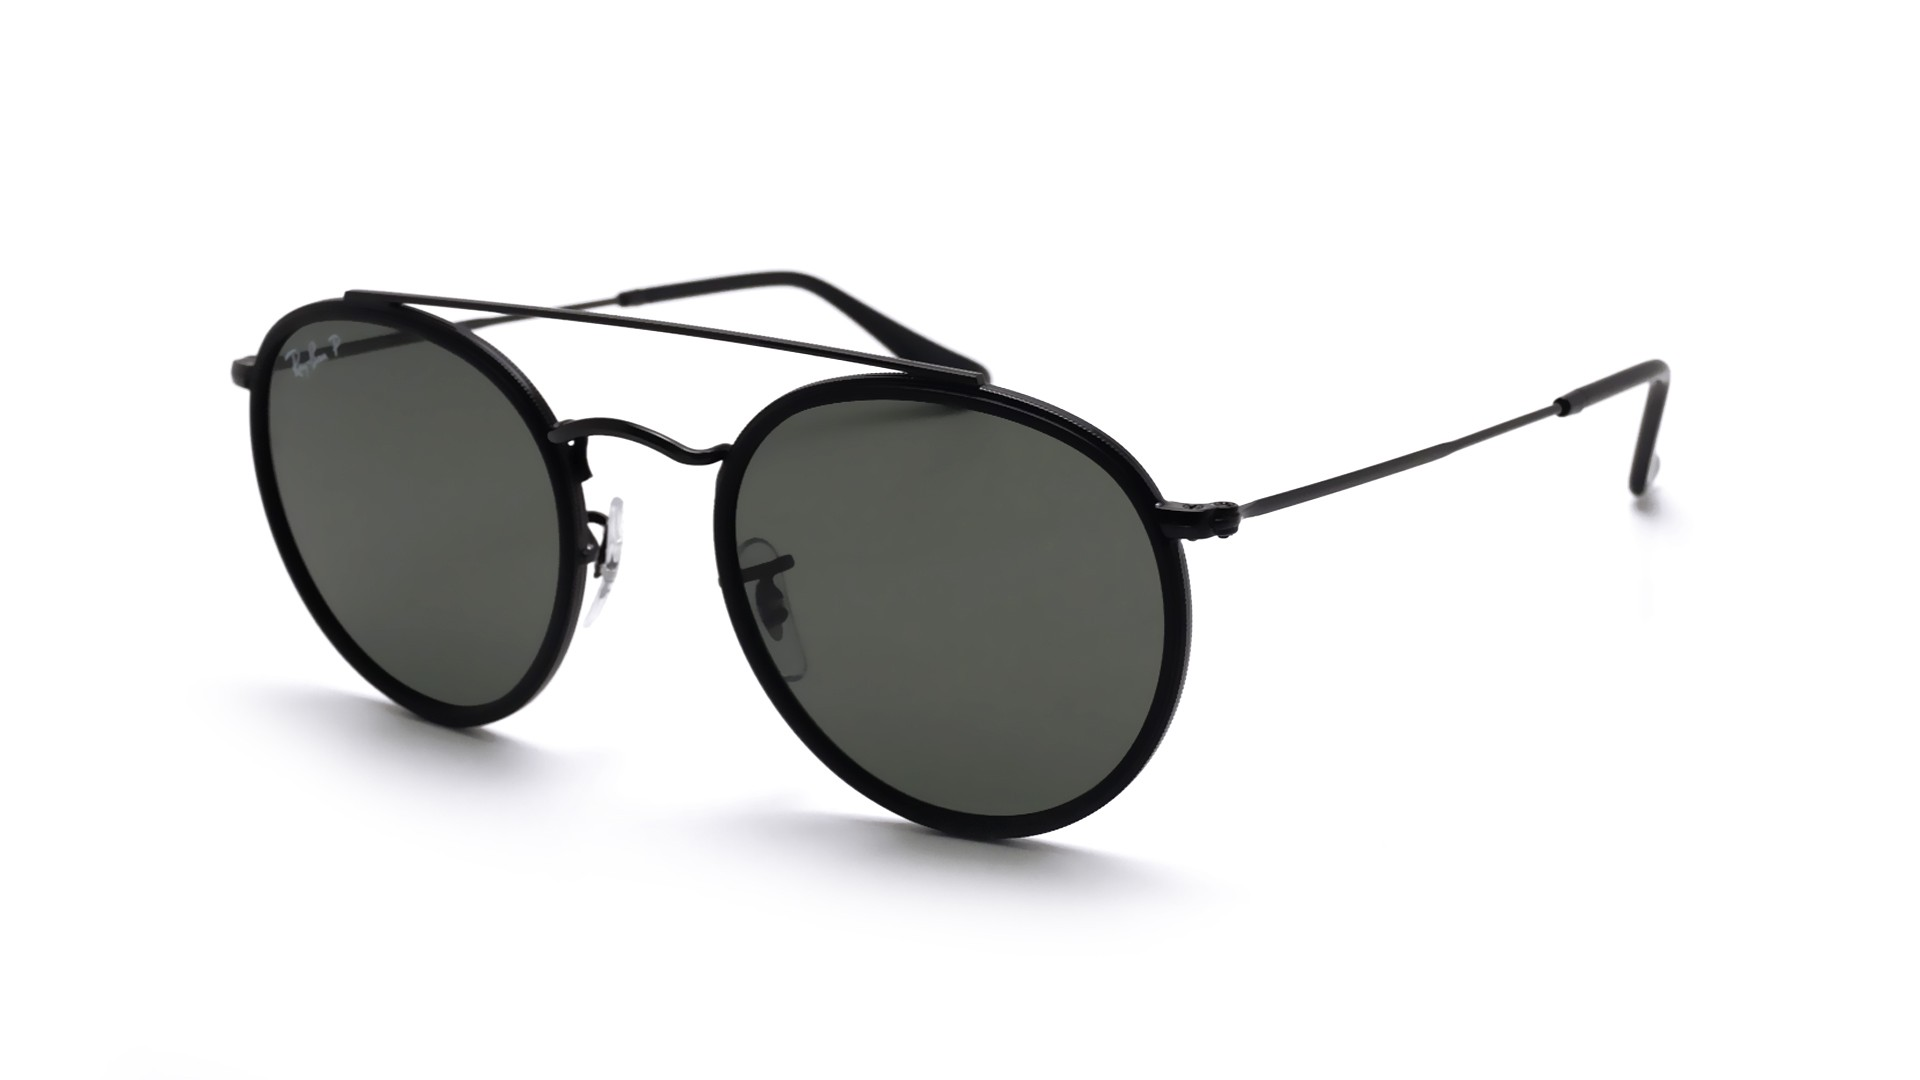 8e8e4c1ba79 Sunglasses Ray-Ban Round Double Bridge Black RB3647N 002 58 51-22 Medium  Polarized